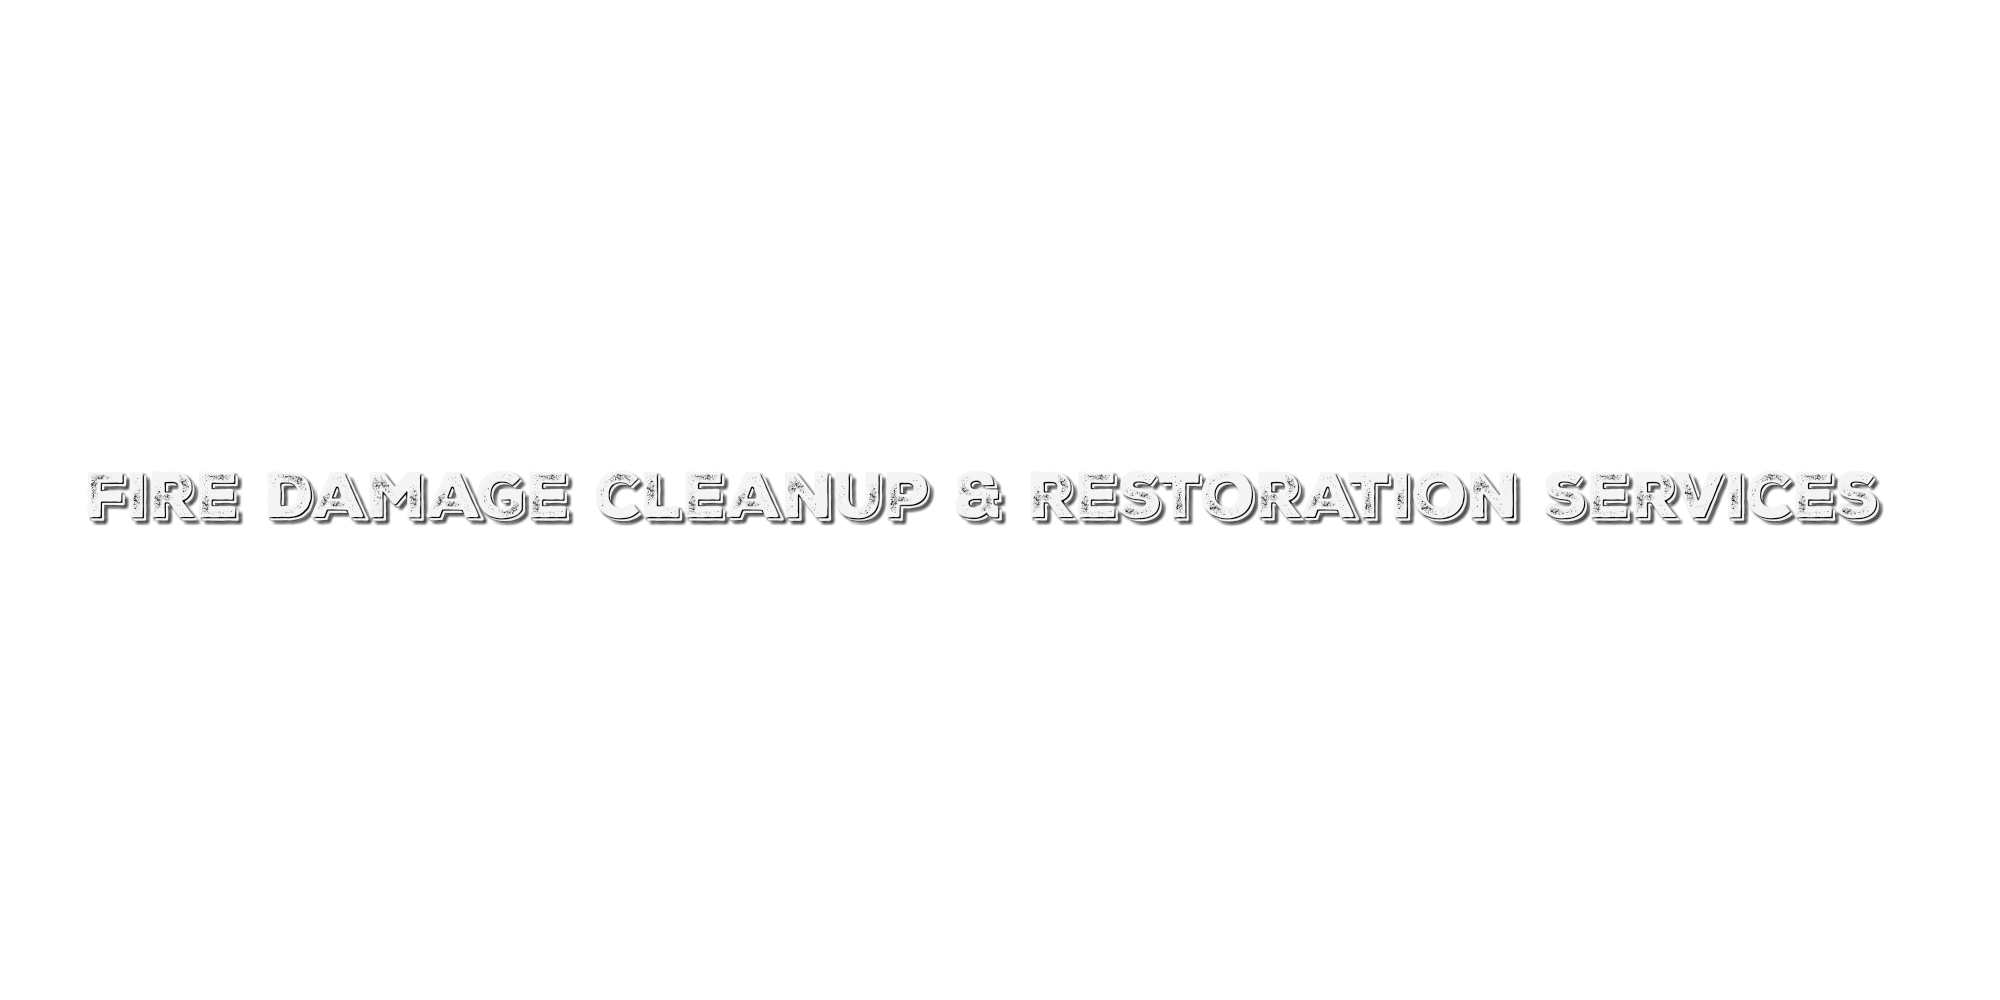 FIRE DAMAGE SERVICES AND RESTORATON SERVICES